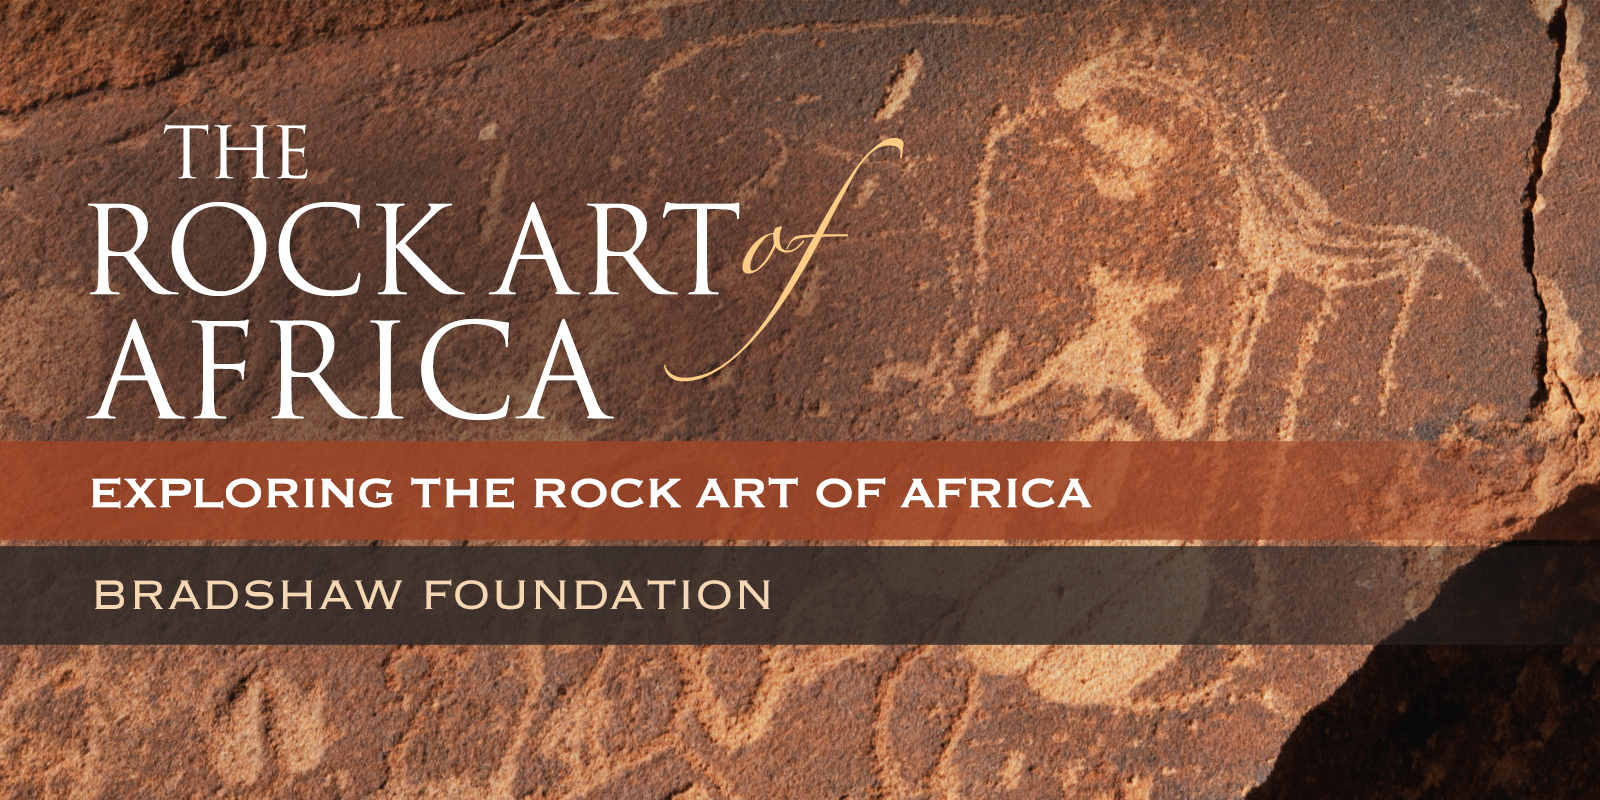 Rock Art Africa African Bradshaw FoundationPetroglyphs Pictographs Archaeology Prehistory